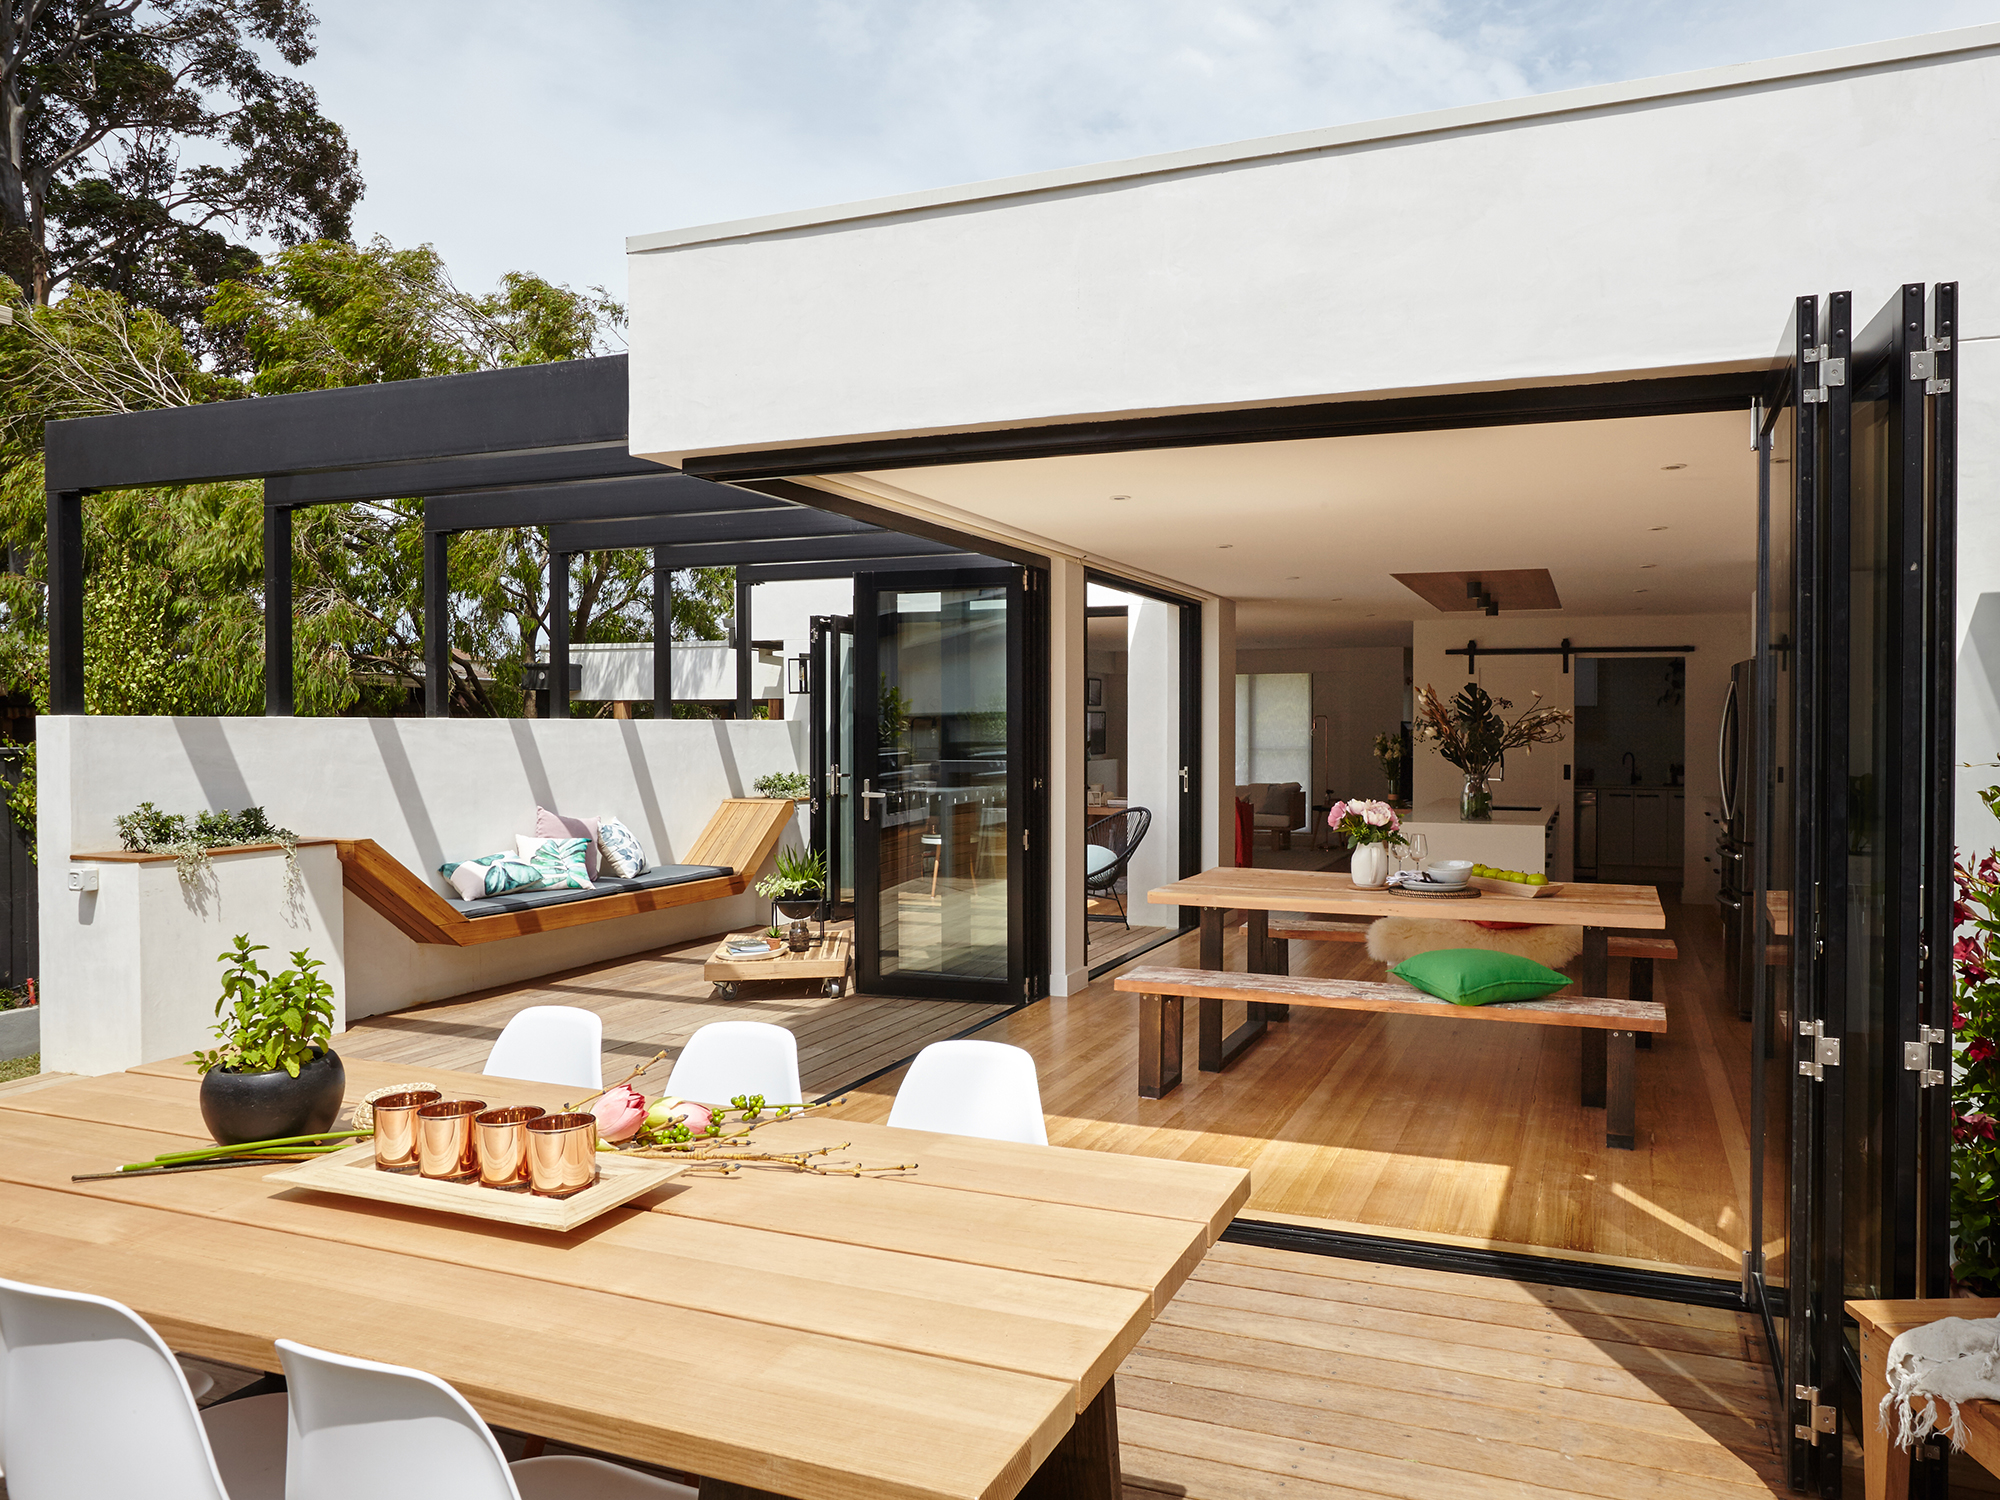 Cool Courtyard Ideas for Your Outdoor Area - realestate.com.au on Small Backyard Entertainment Area Ideas id=58803